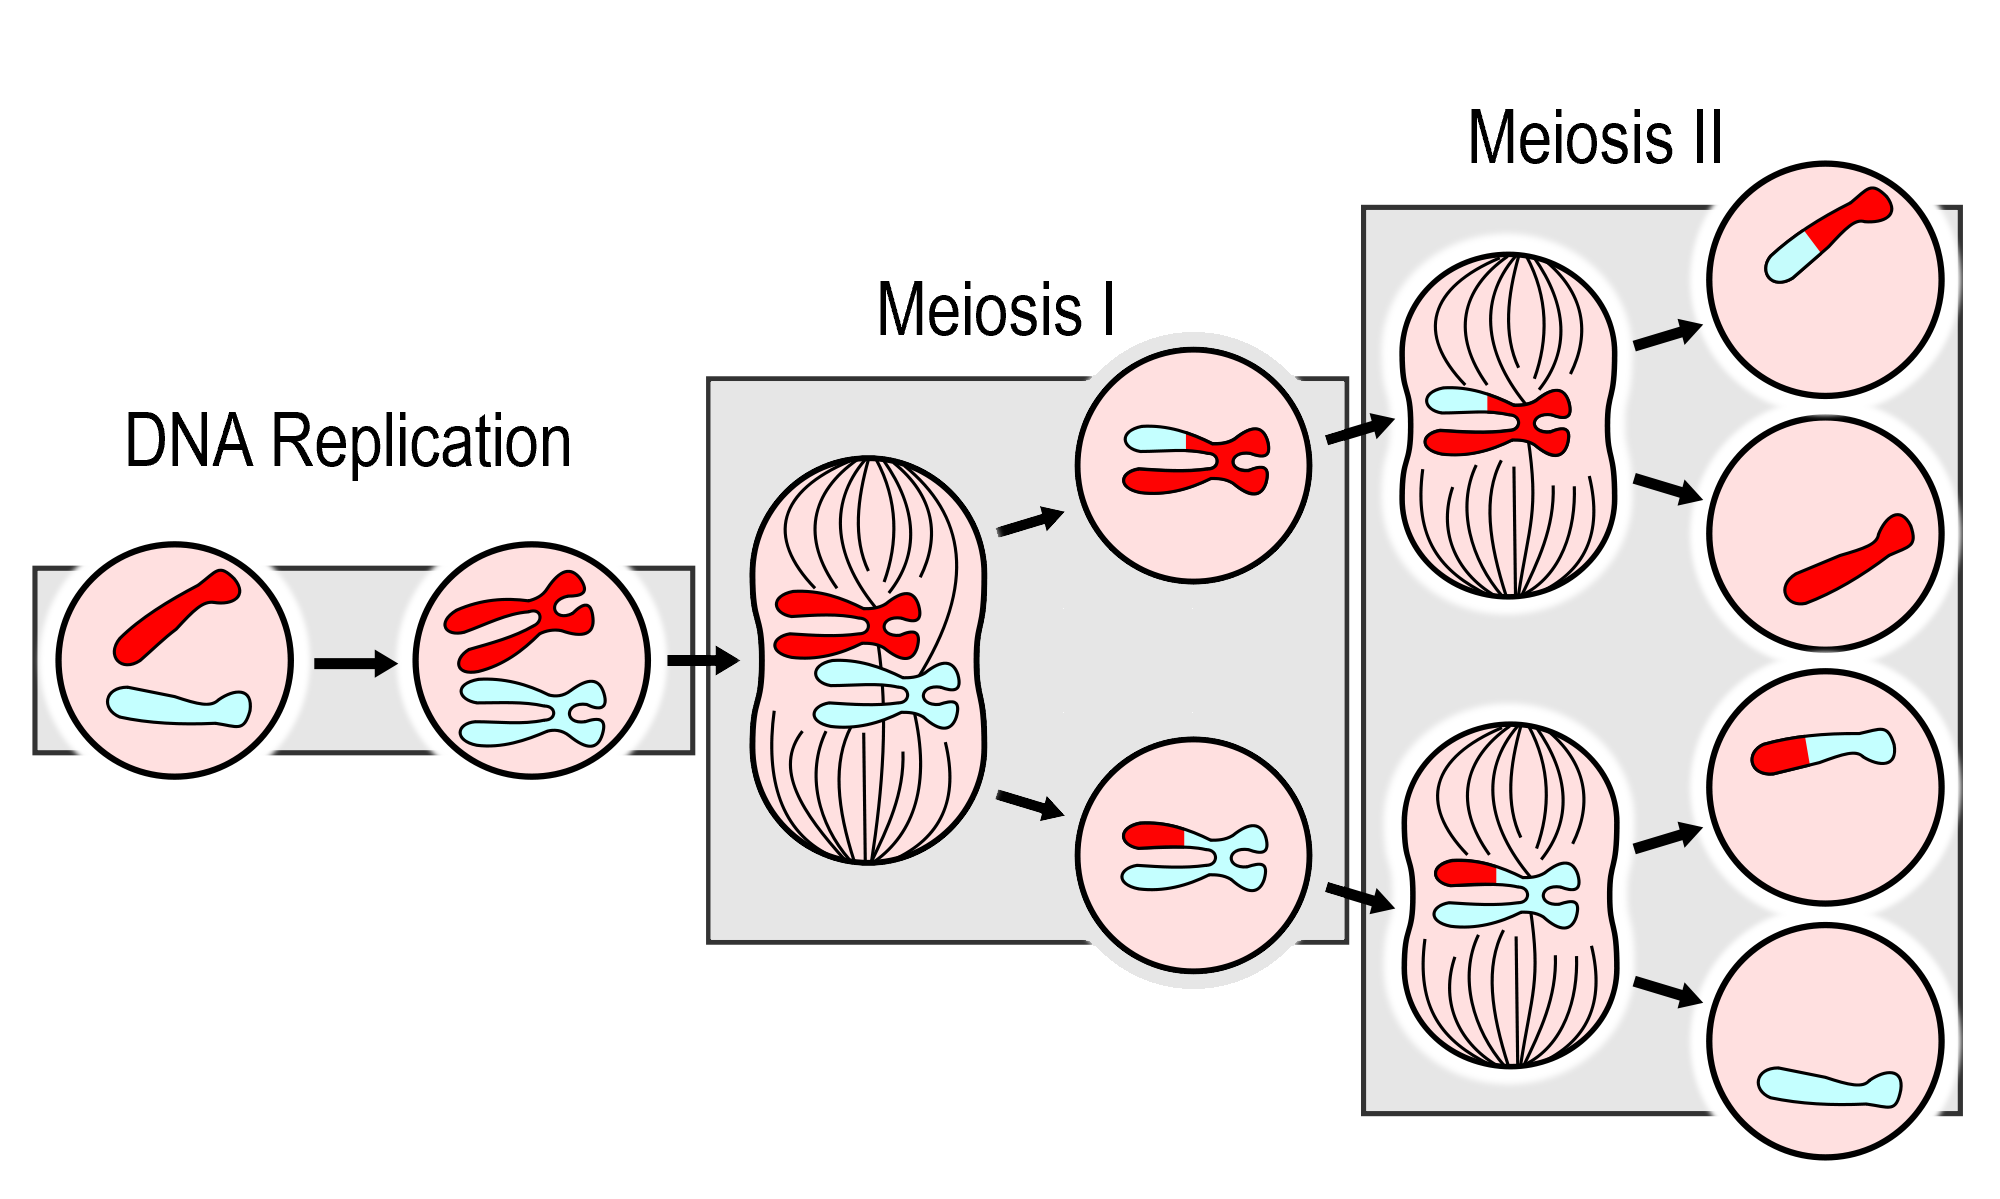 Image shows the major events in Meiosis